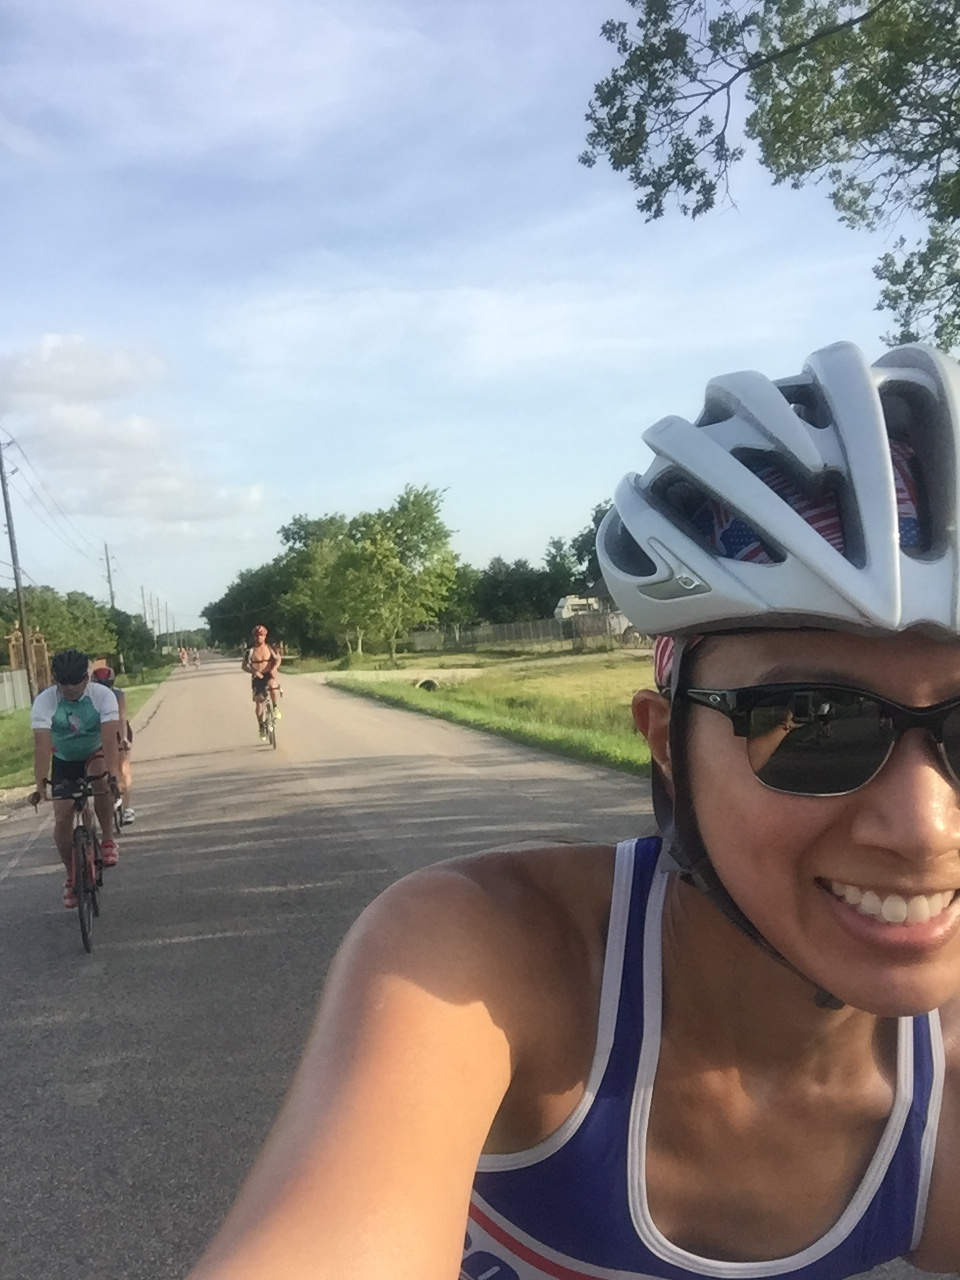 Tri training is more fun with friends!